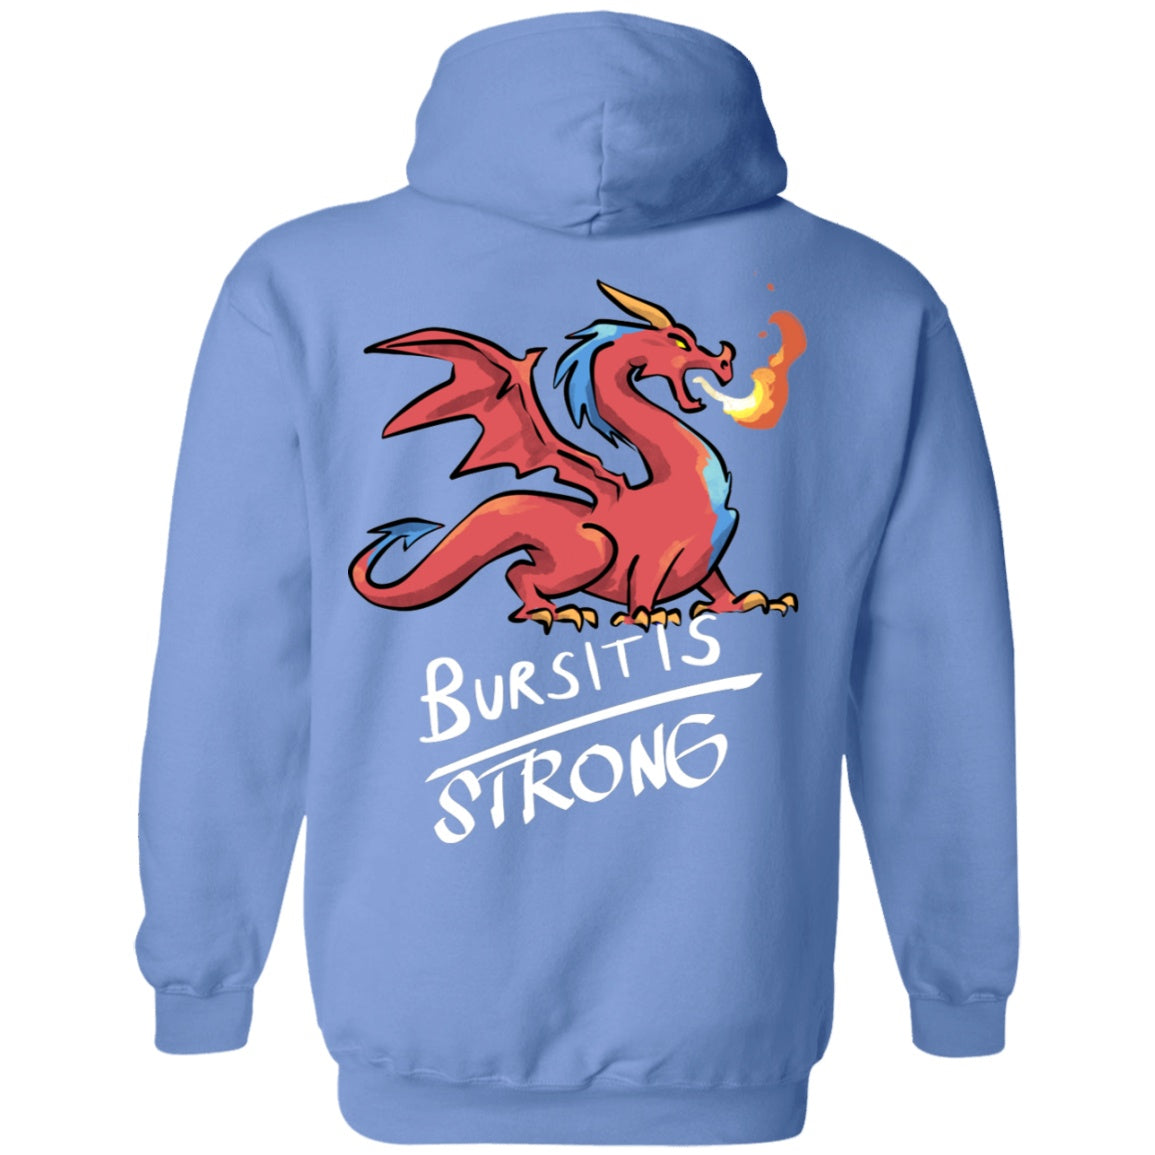 Bursitis Strong Dragon Pullover Hoodie 8 oz. - The Unchargeables